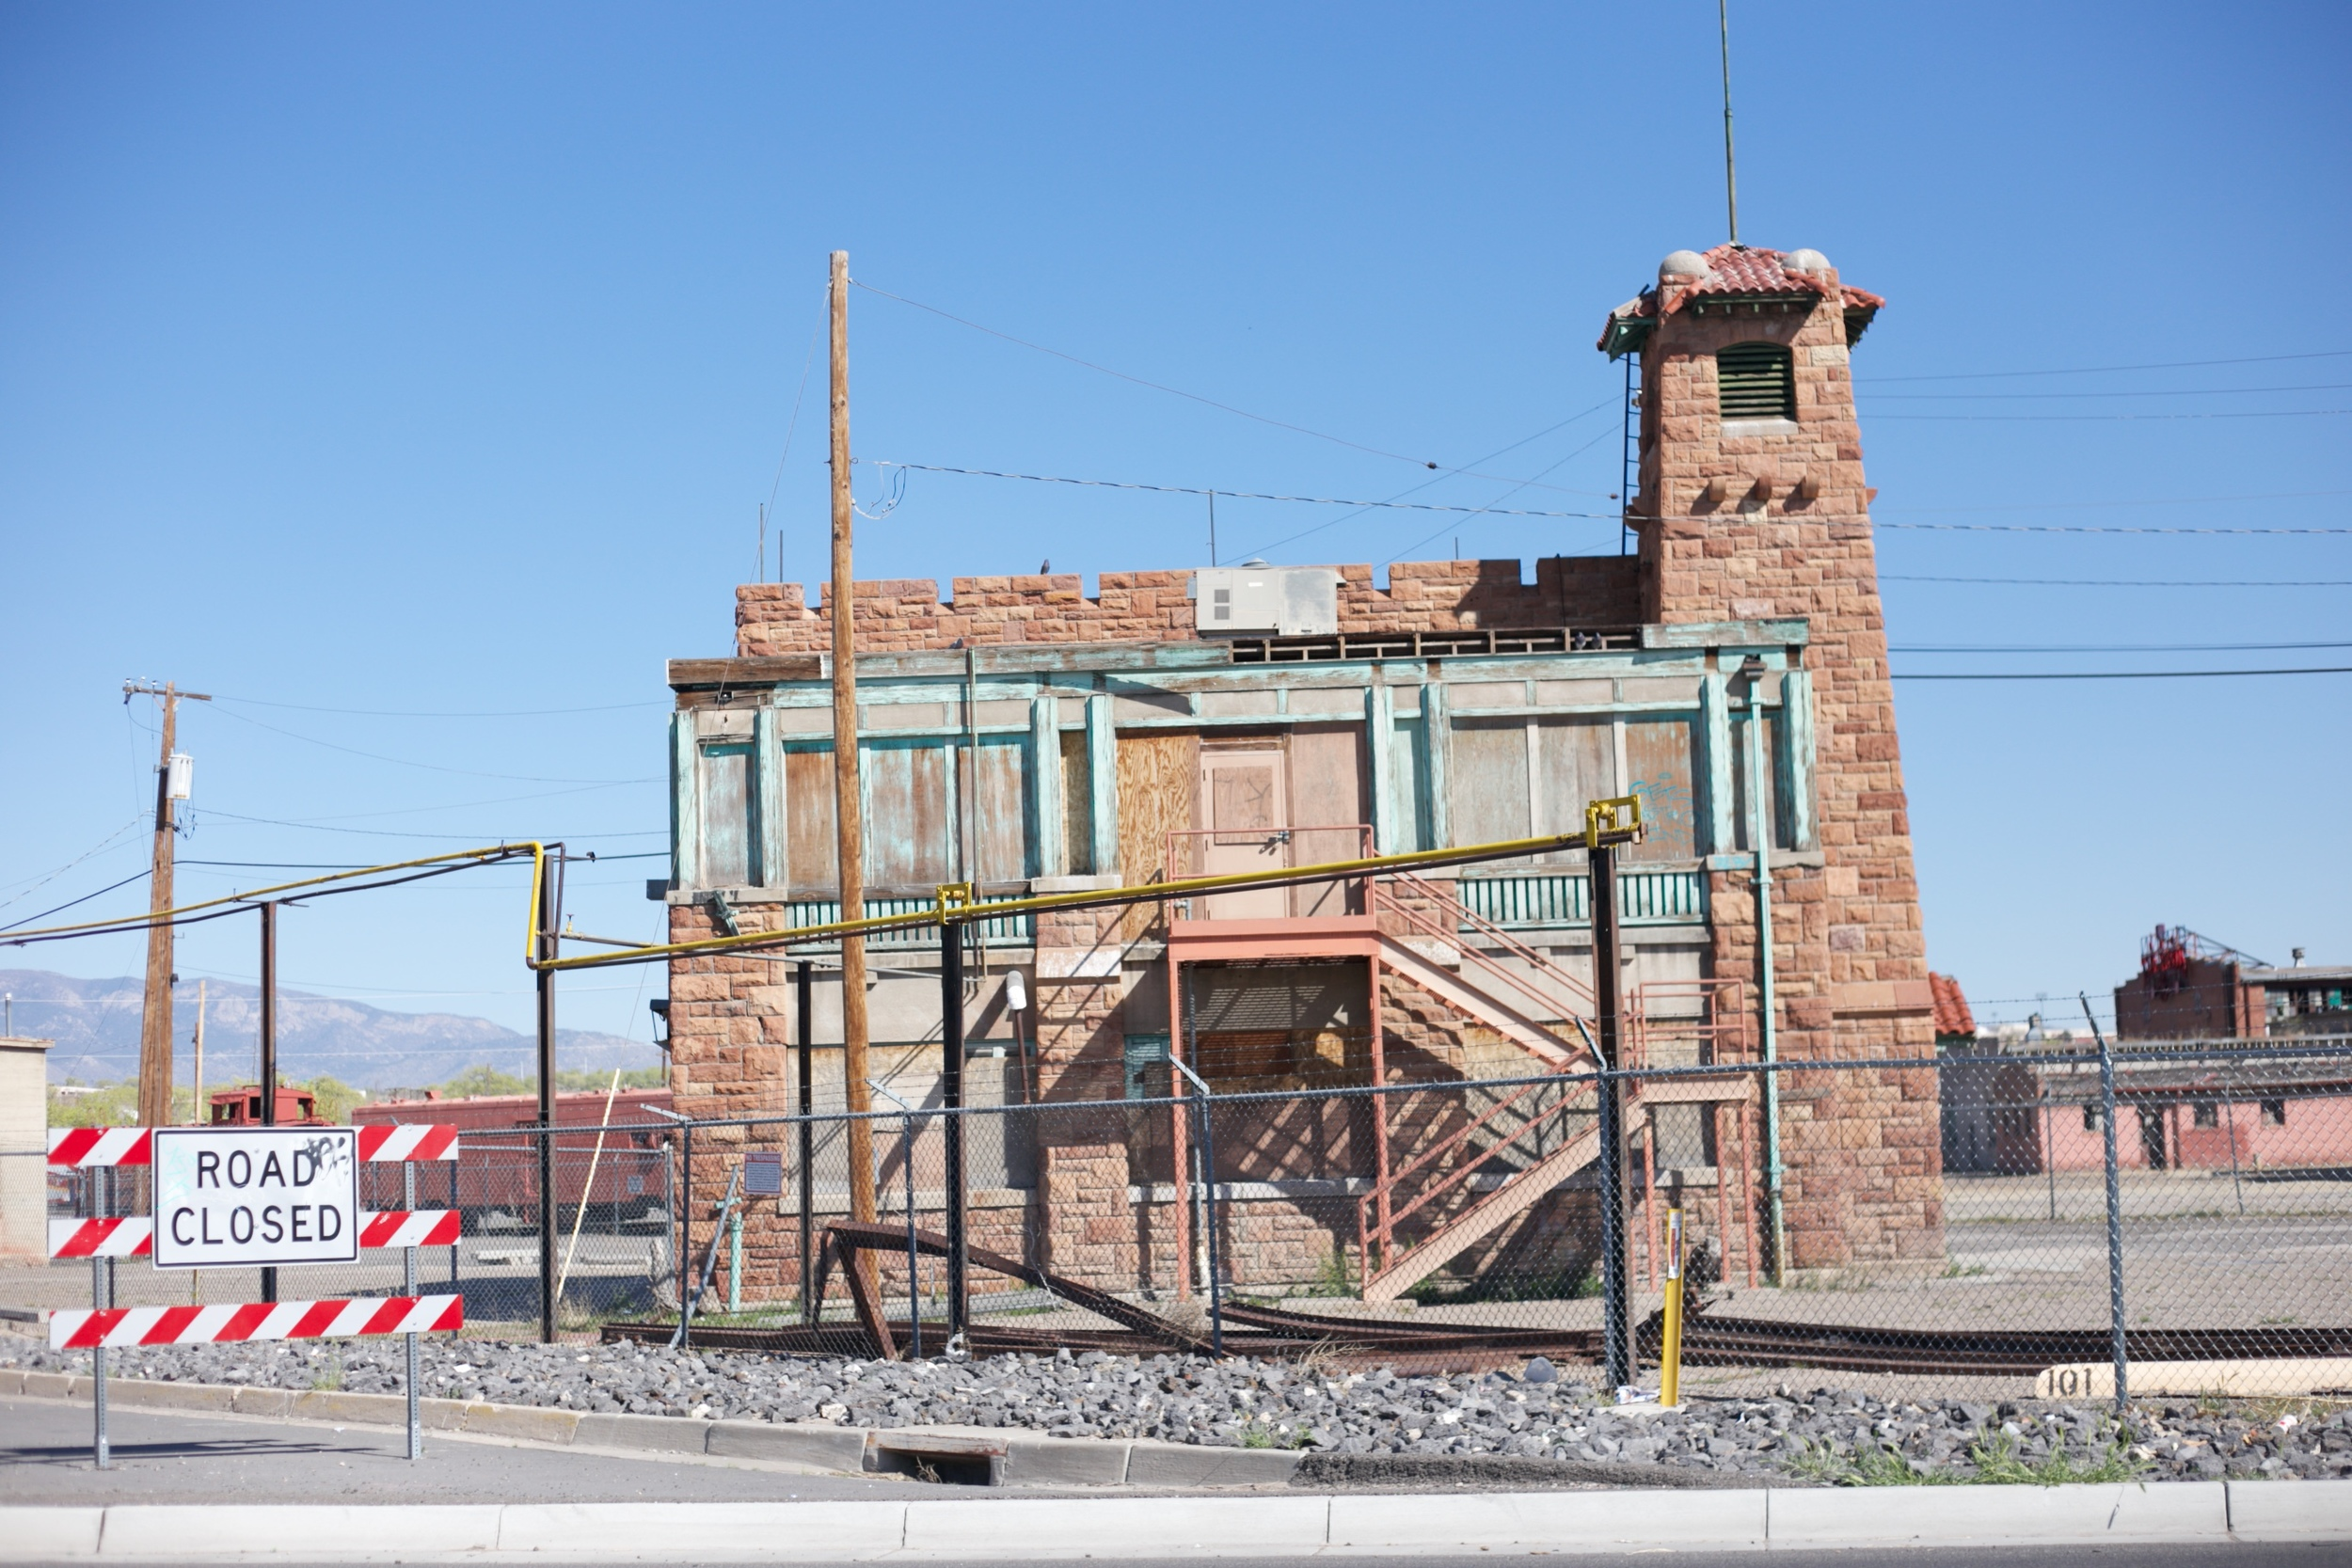 An abandoned building - part of the old Rail Yards.